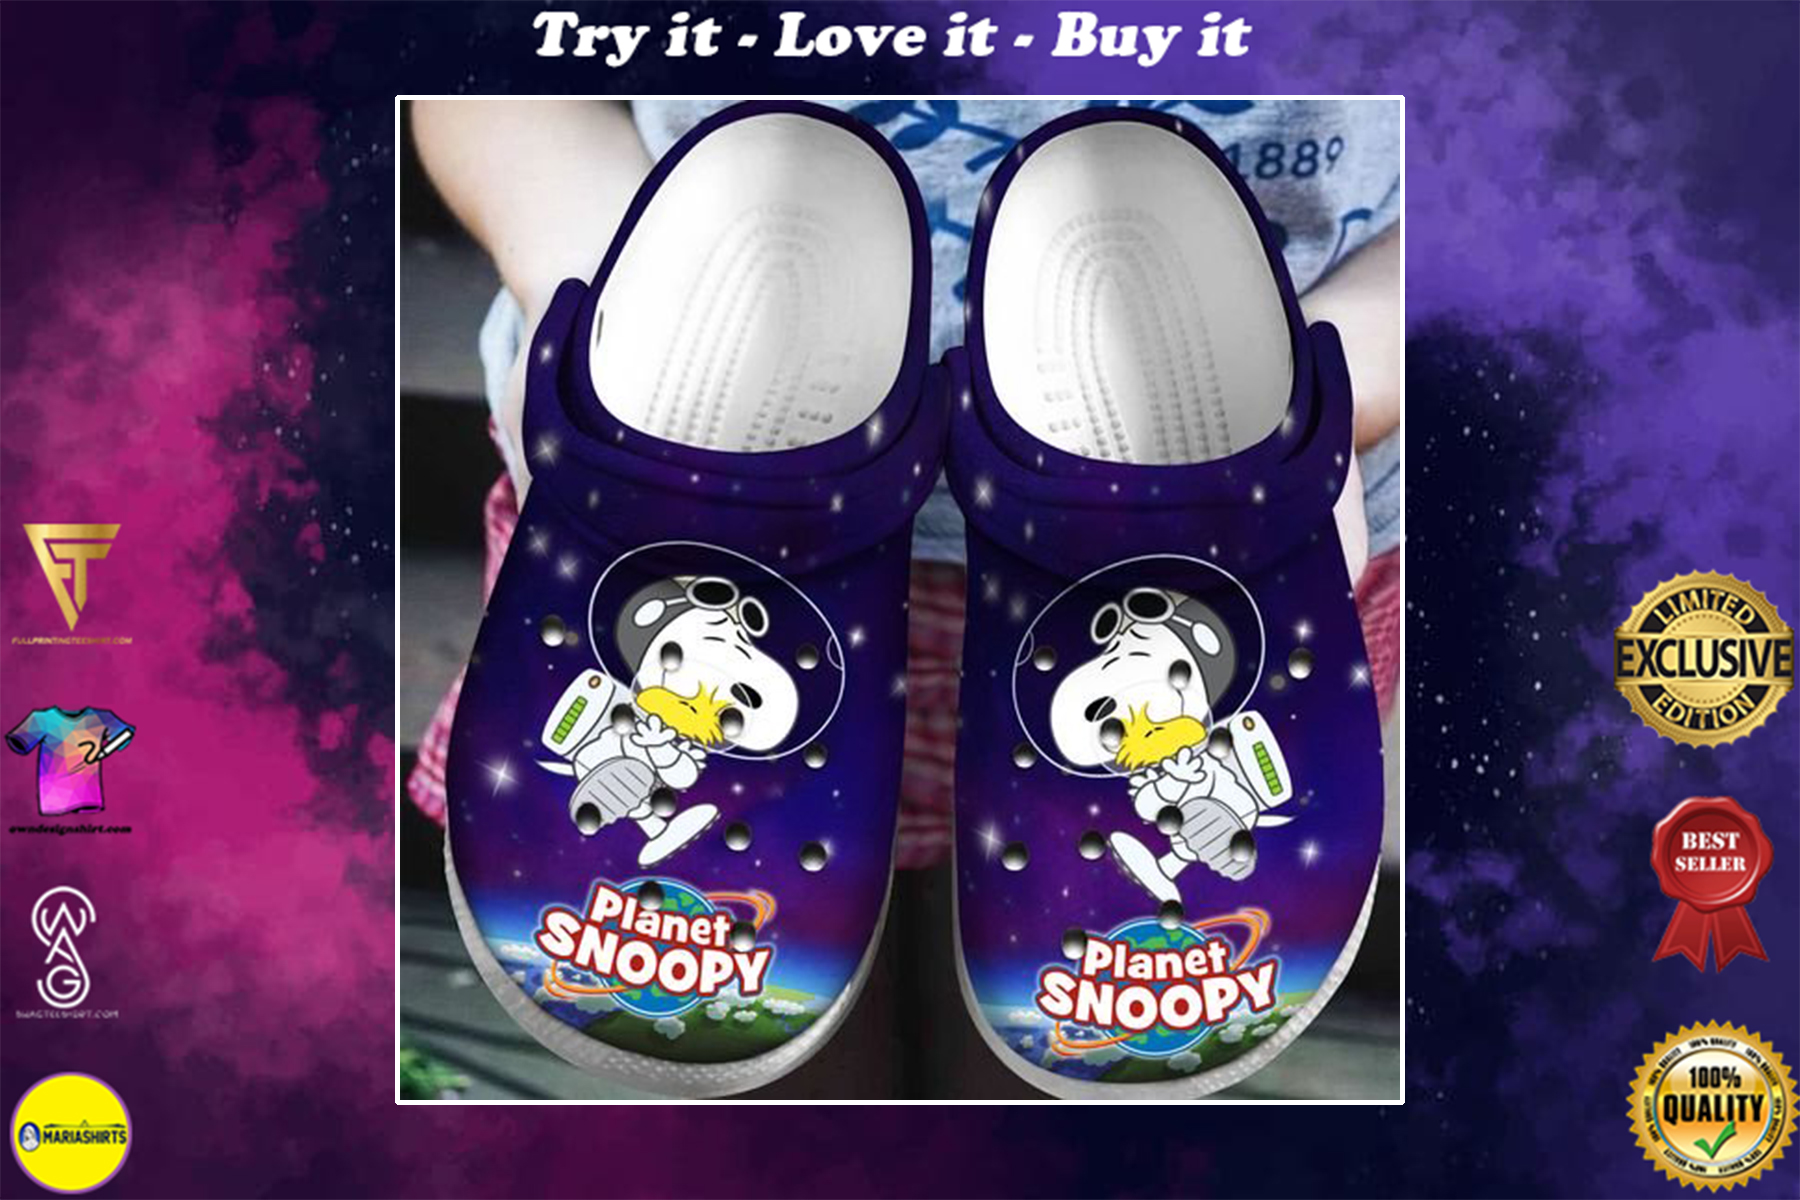 [special edition] crocs planet snoopy and woodstock in space clog - maria